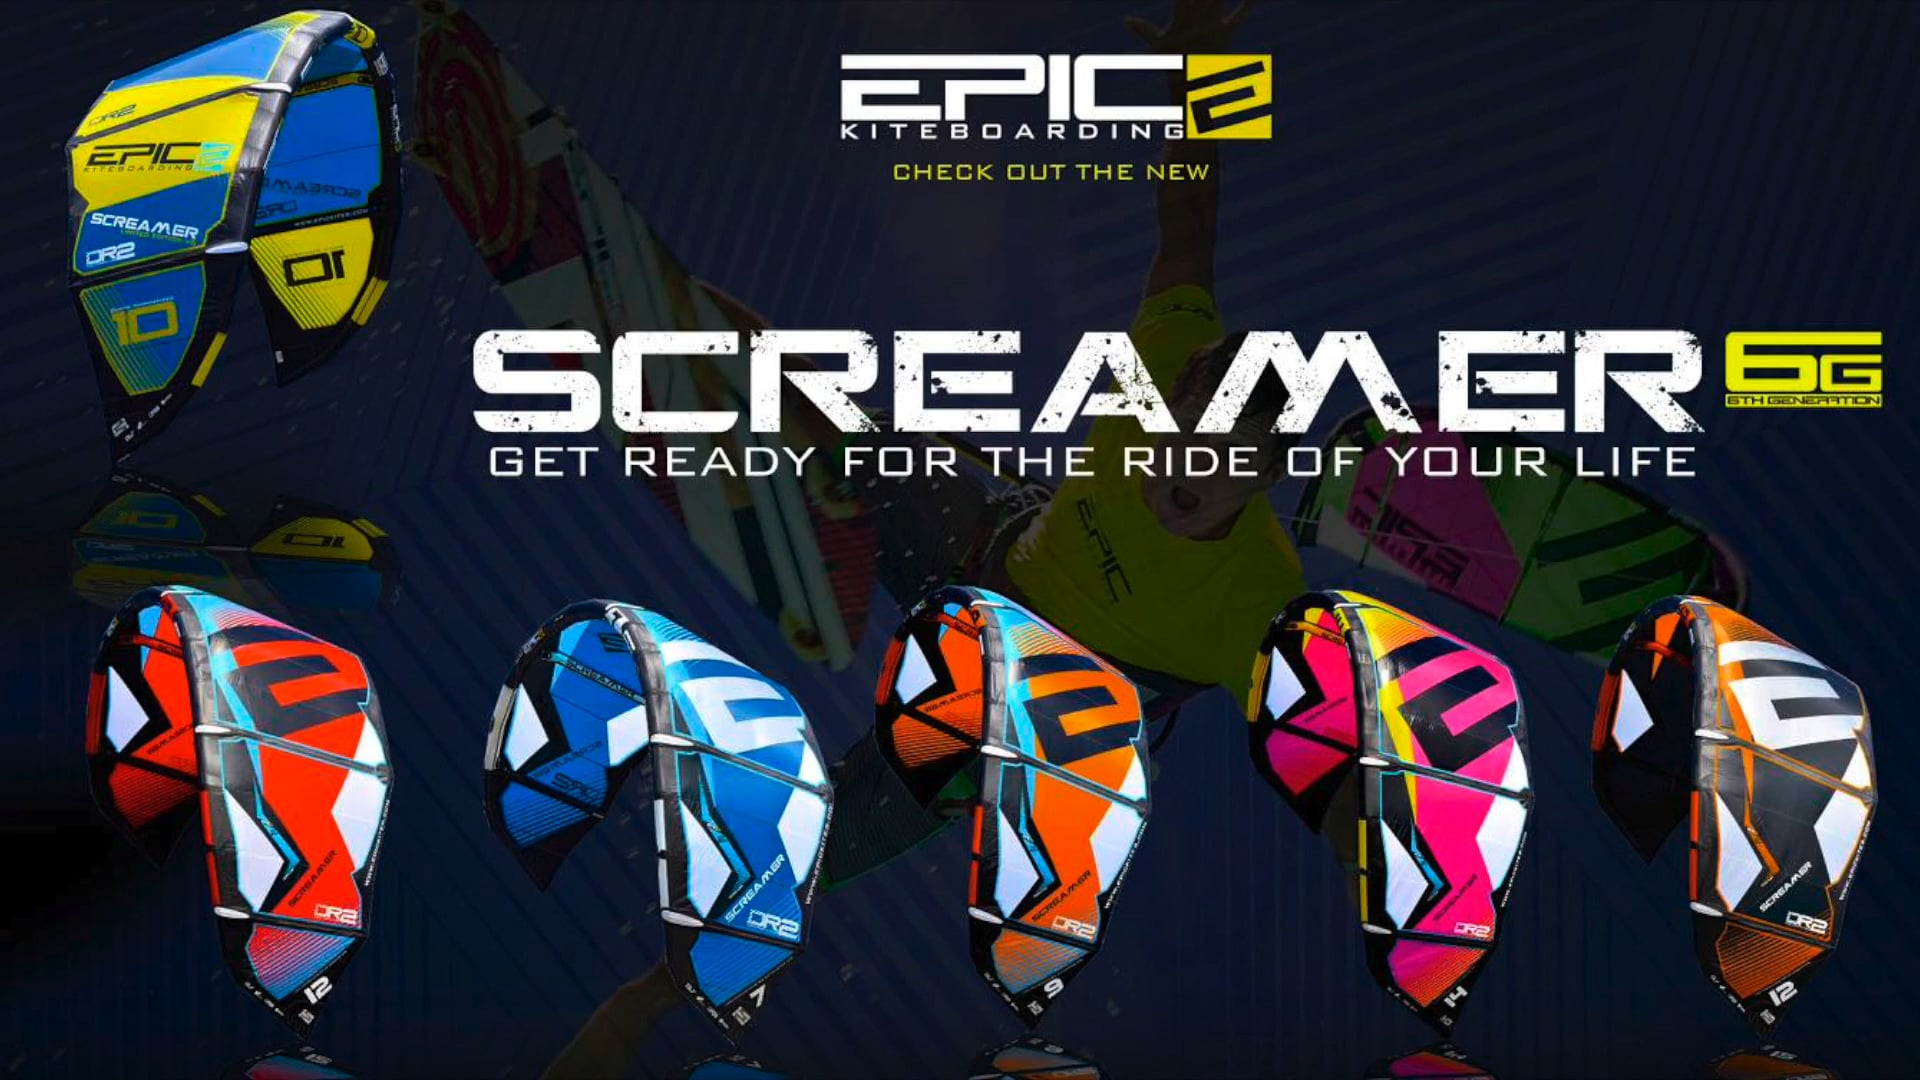 SCREAMER 6G testimonial from kiters all over the world - with Epic Kites Kiteboarding